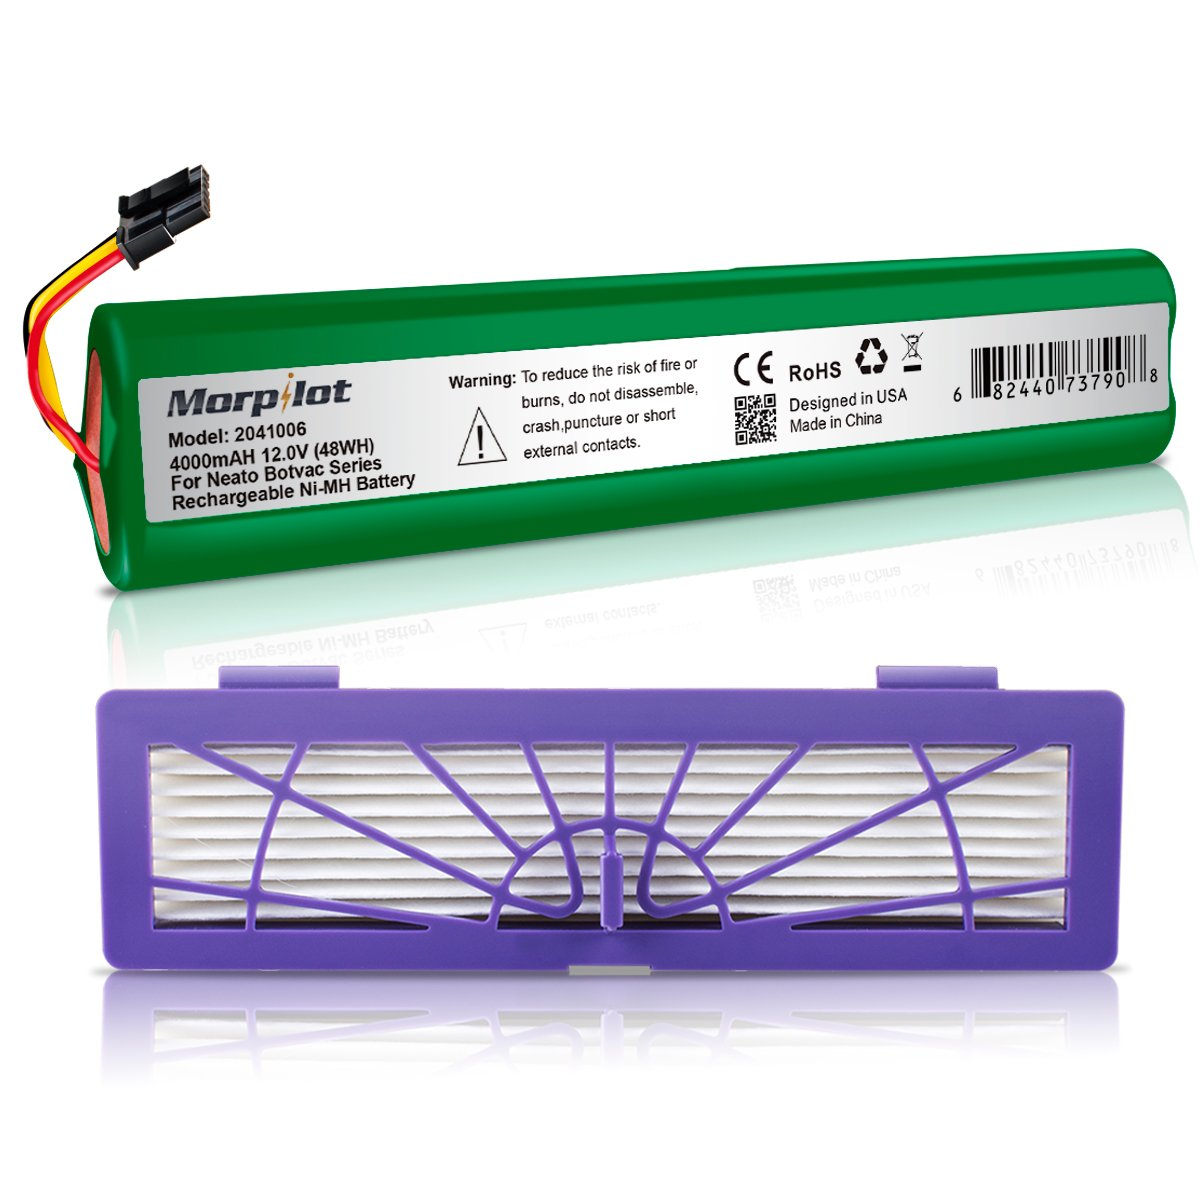 Morpilot 4000mAh Extended NiMh Battery with HEPA Fliter for Neato Botvac Series Robots Botvac 70e, 75, 80, 85 Robotic Vacuum 945-0129 945-0174(Not compatible with Neato D3 D5 D7)